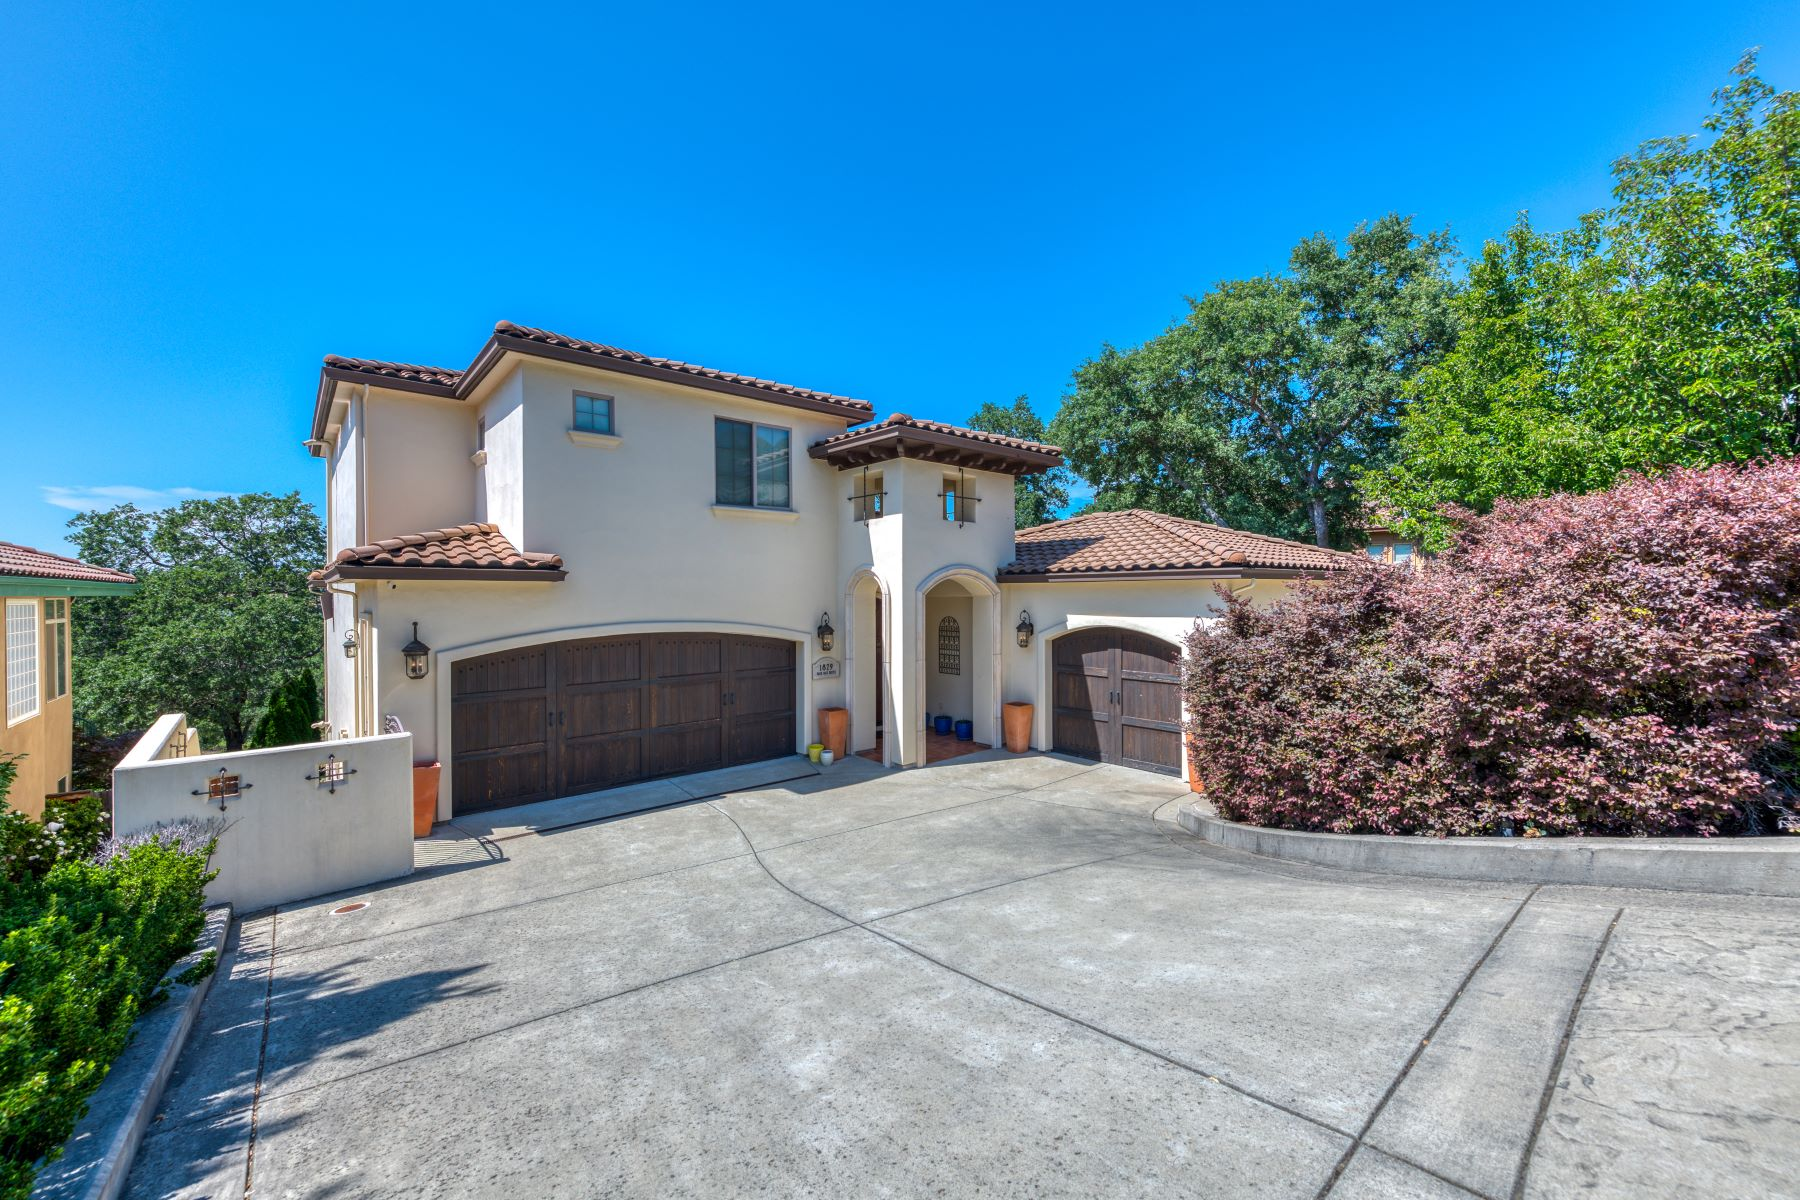 single family homes for Active at 1829 Park Oak Dr, Roseville, CA 95661 1829 Park Oak Dr Roseville, California 95661 United States